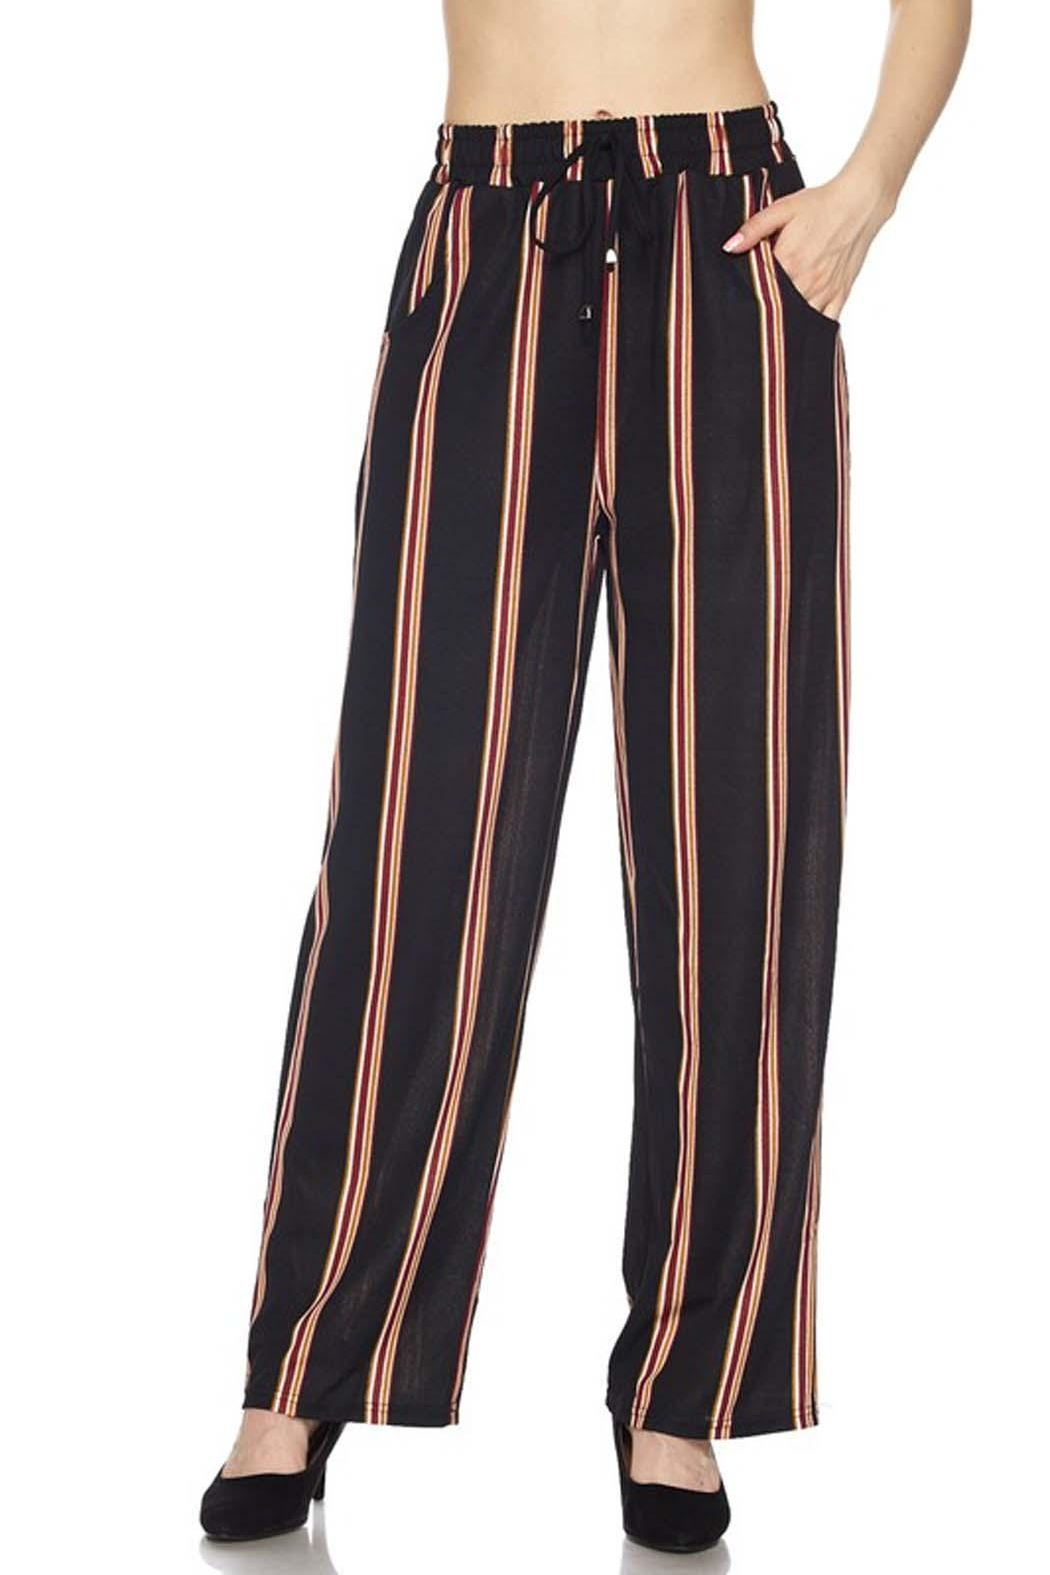 635b39452e2 ambiance apparel Stripe Palazzo Pant from New York by Avenue A ...